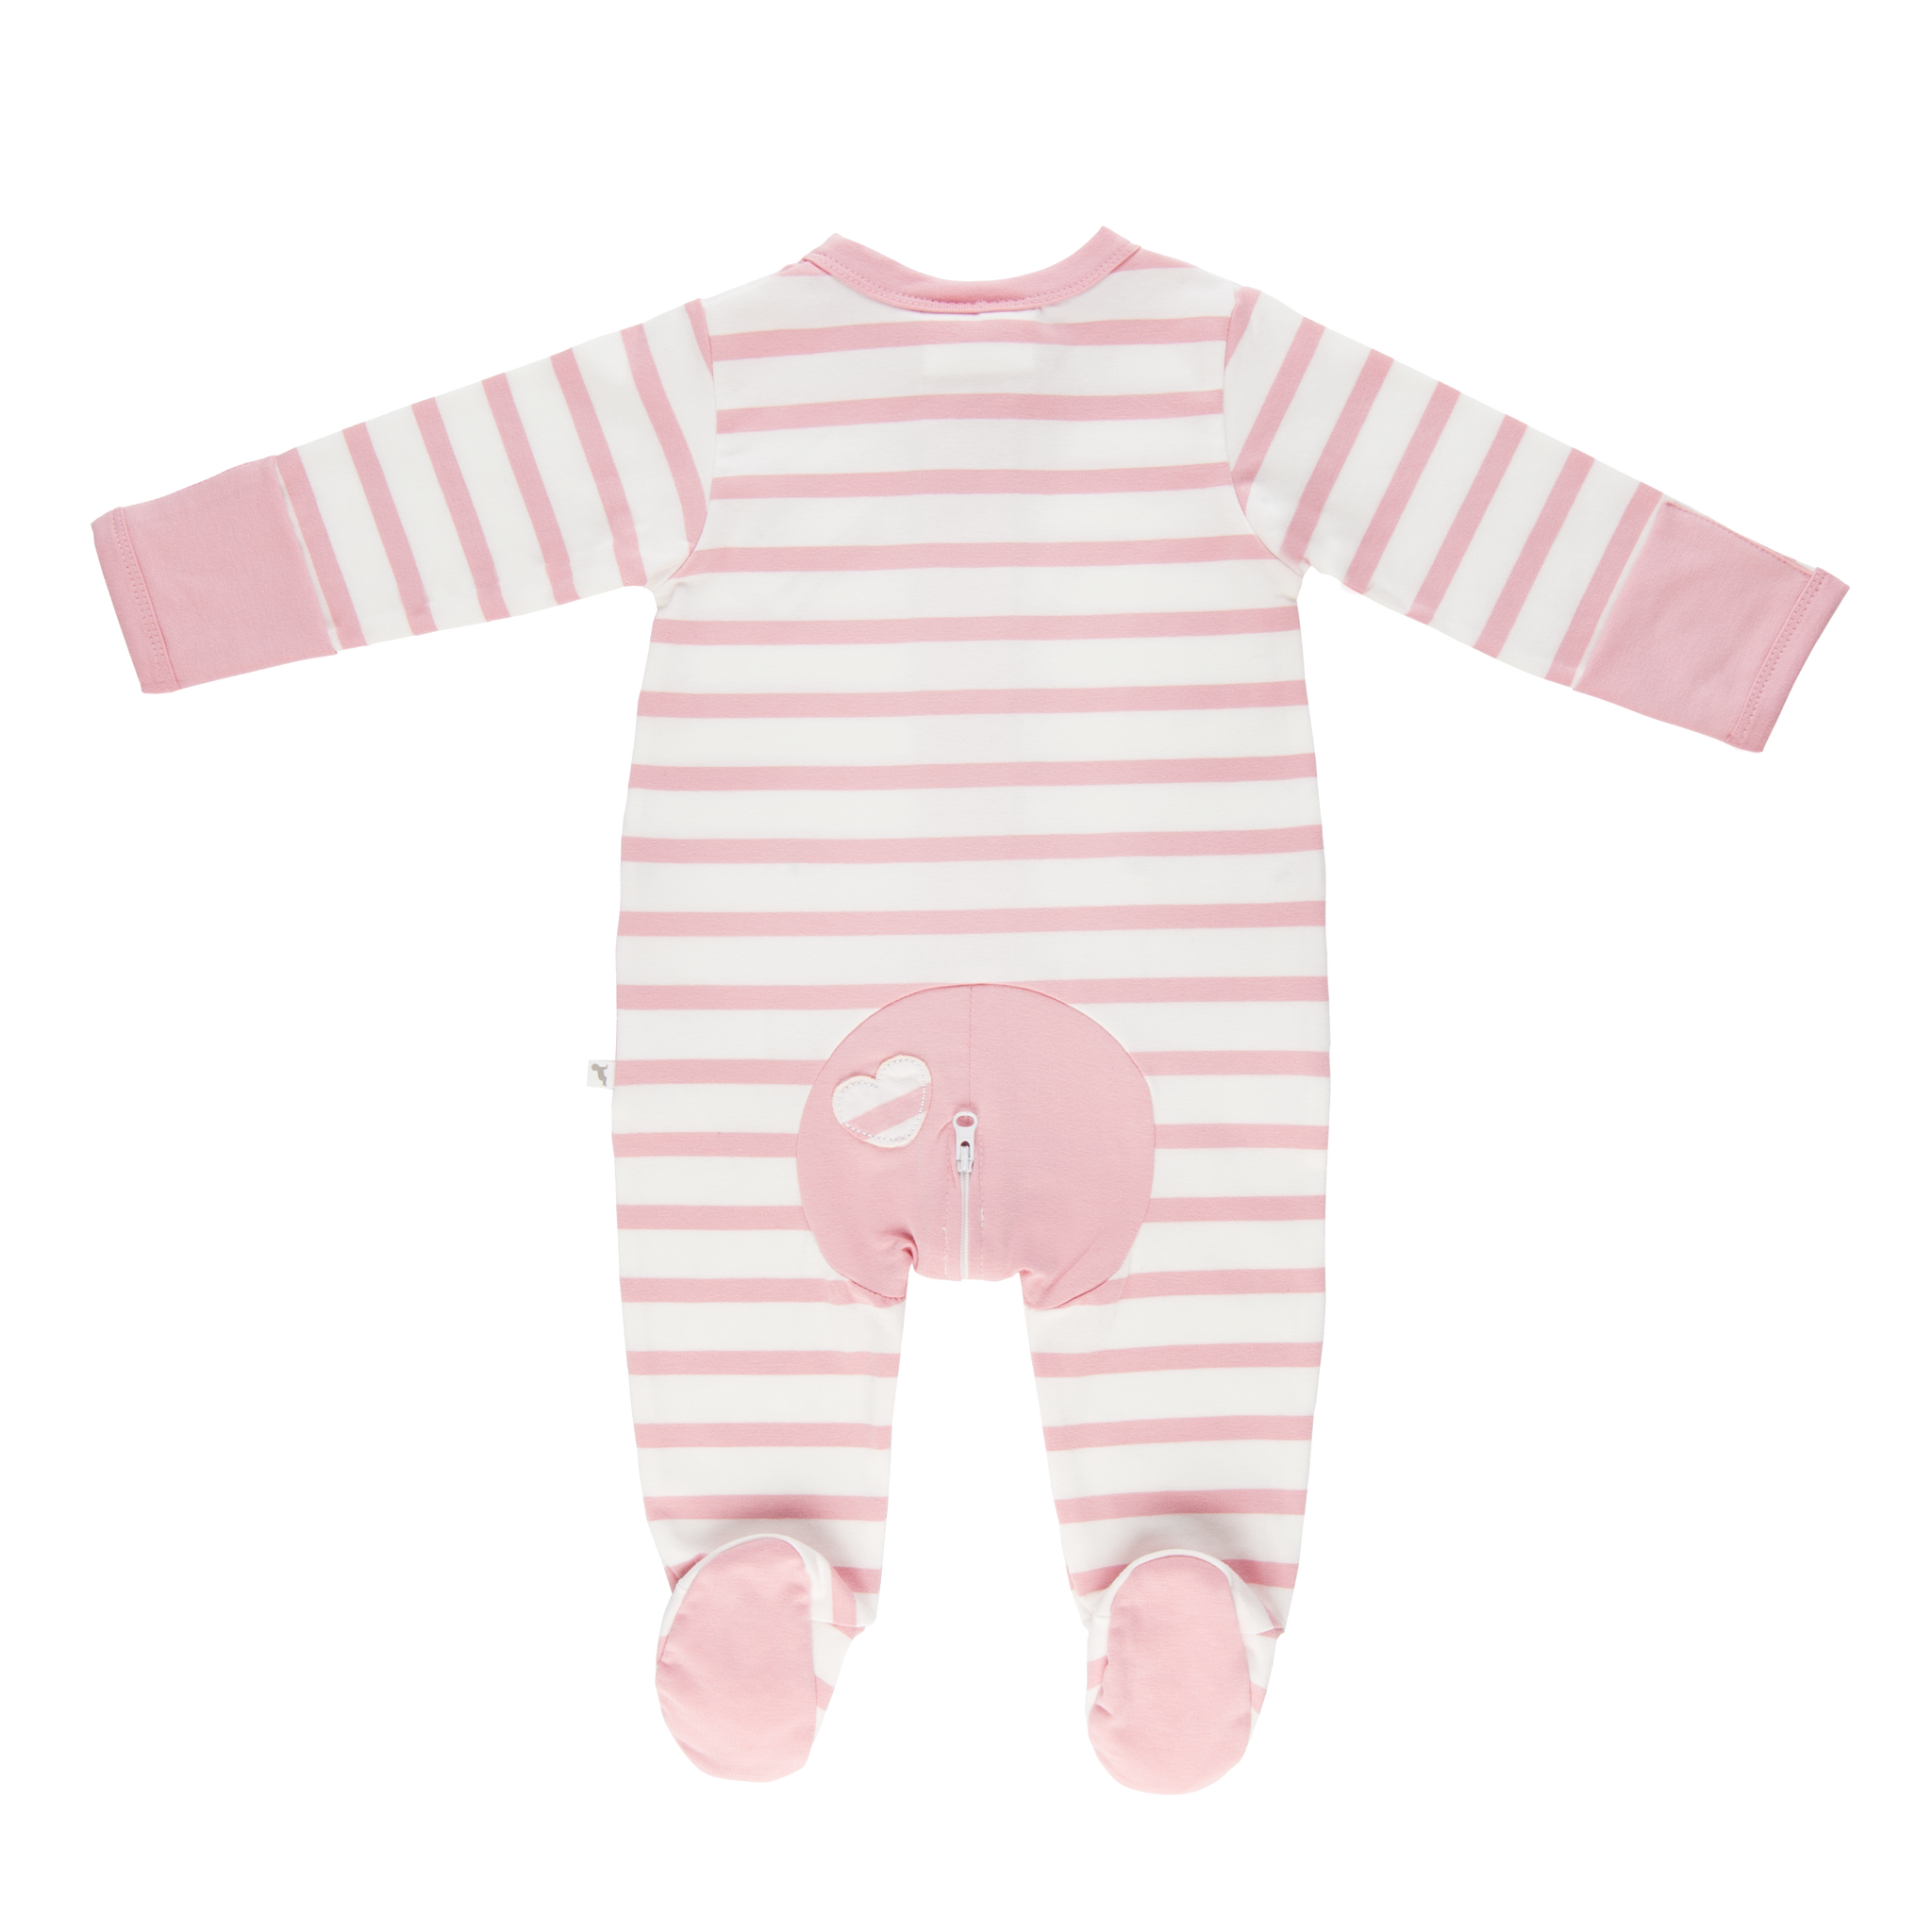 Wholesale Starter Pack - Pink Stripe Long Romper-Wholesale Starter Pack-00000 x 1 | 0000 x 1 | 000 x 2 | 00 x 2 | 0 x 1 | 1 x 1-Li'l Zippers-Baby-Zip-Rompers